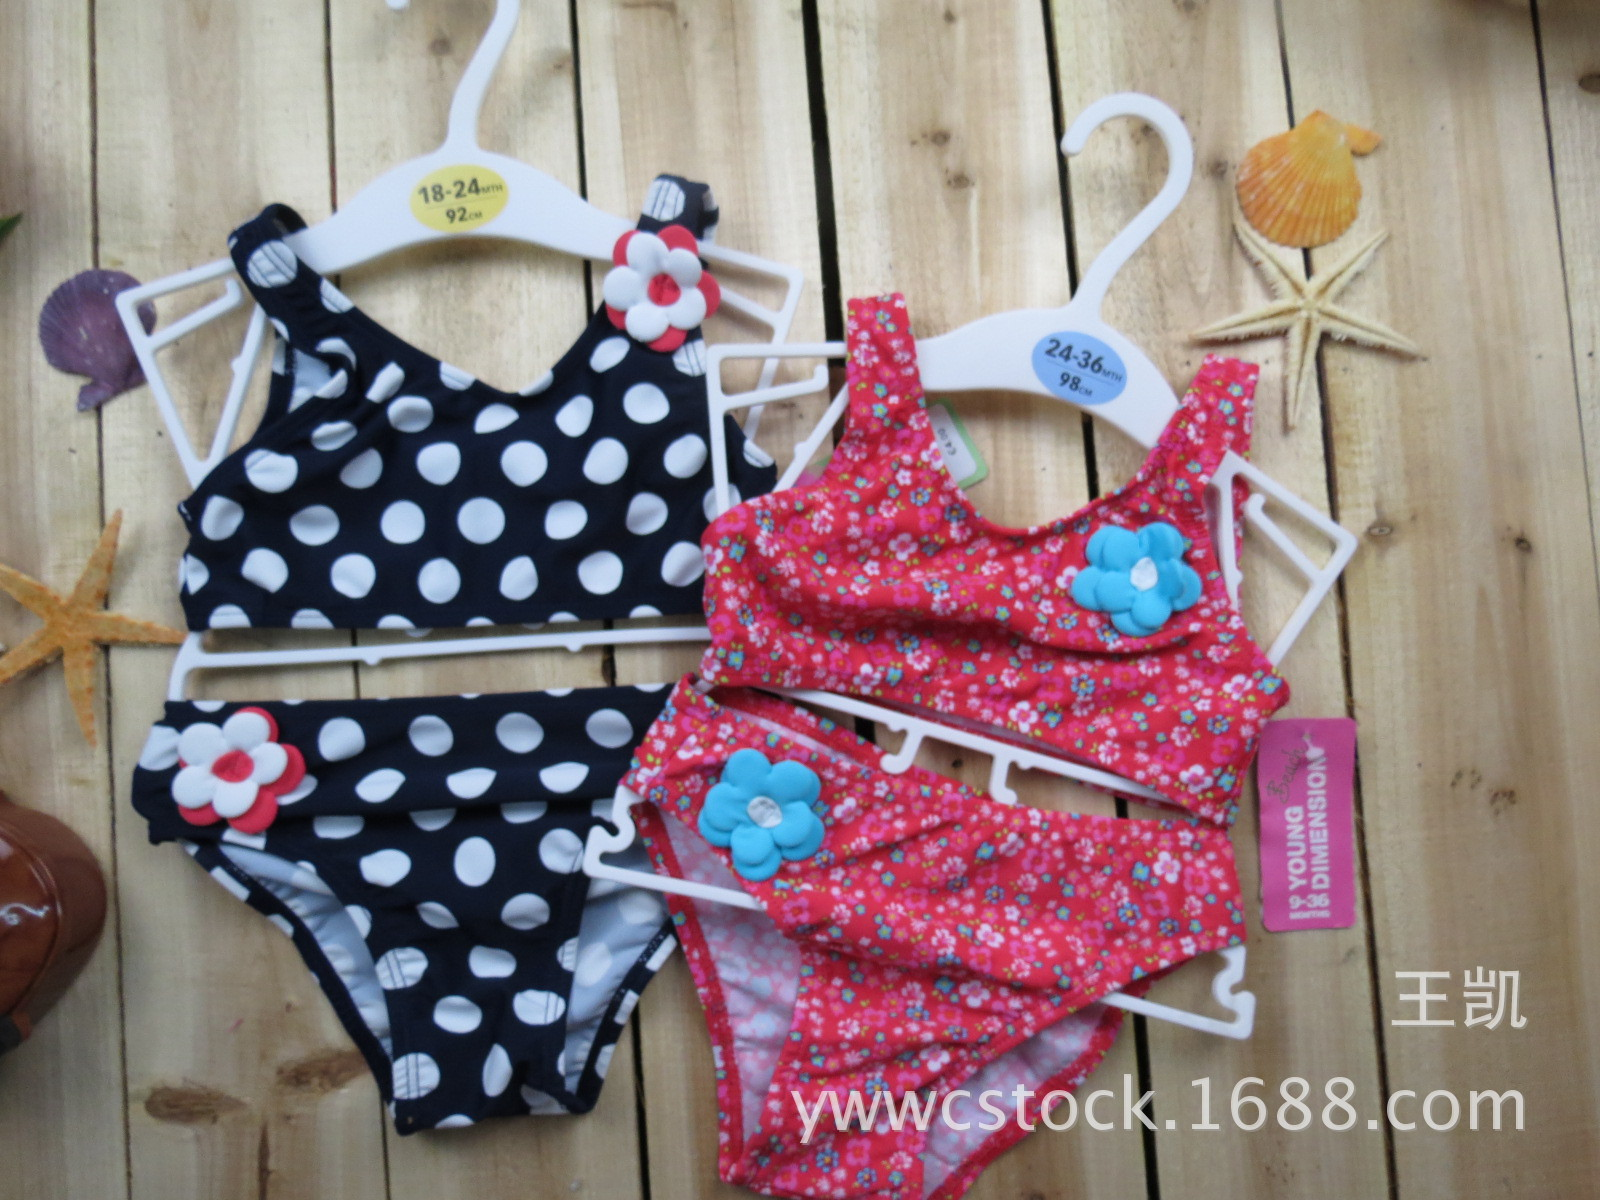 The Foreign Trade Original Garment Cartoon-Style Children One-piece Split Type KID'S Swimwear Girls Swimwear Small CHILDREN'S Ba